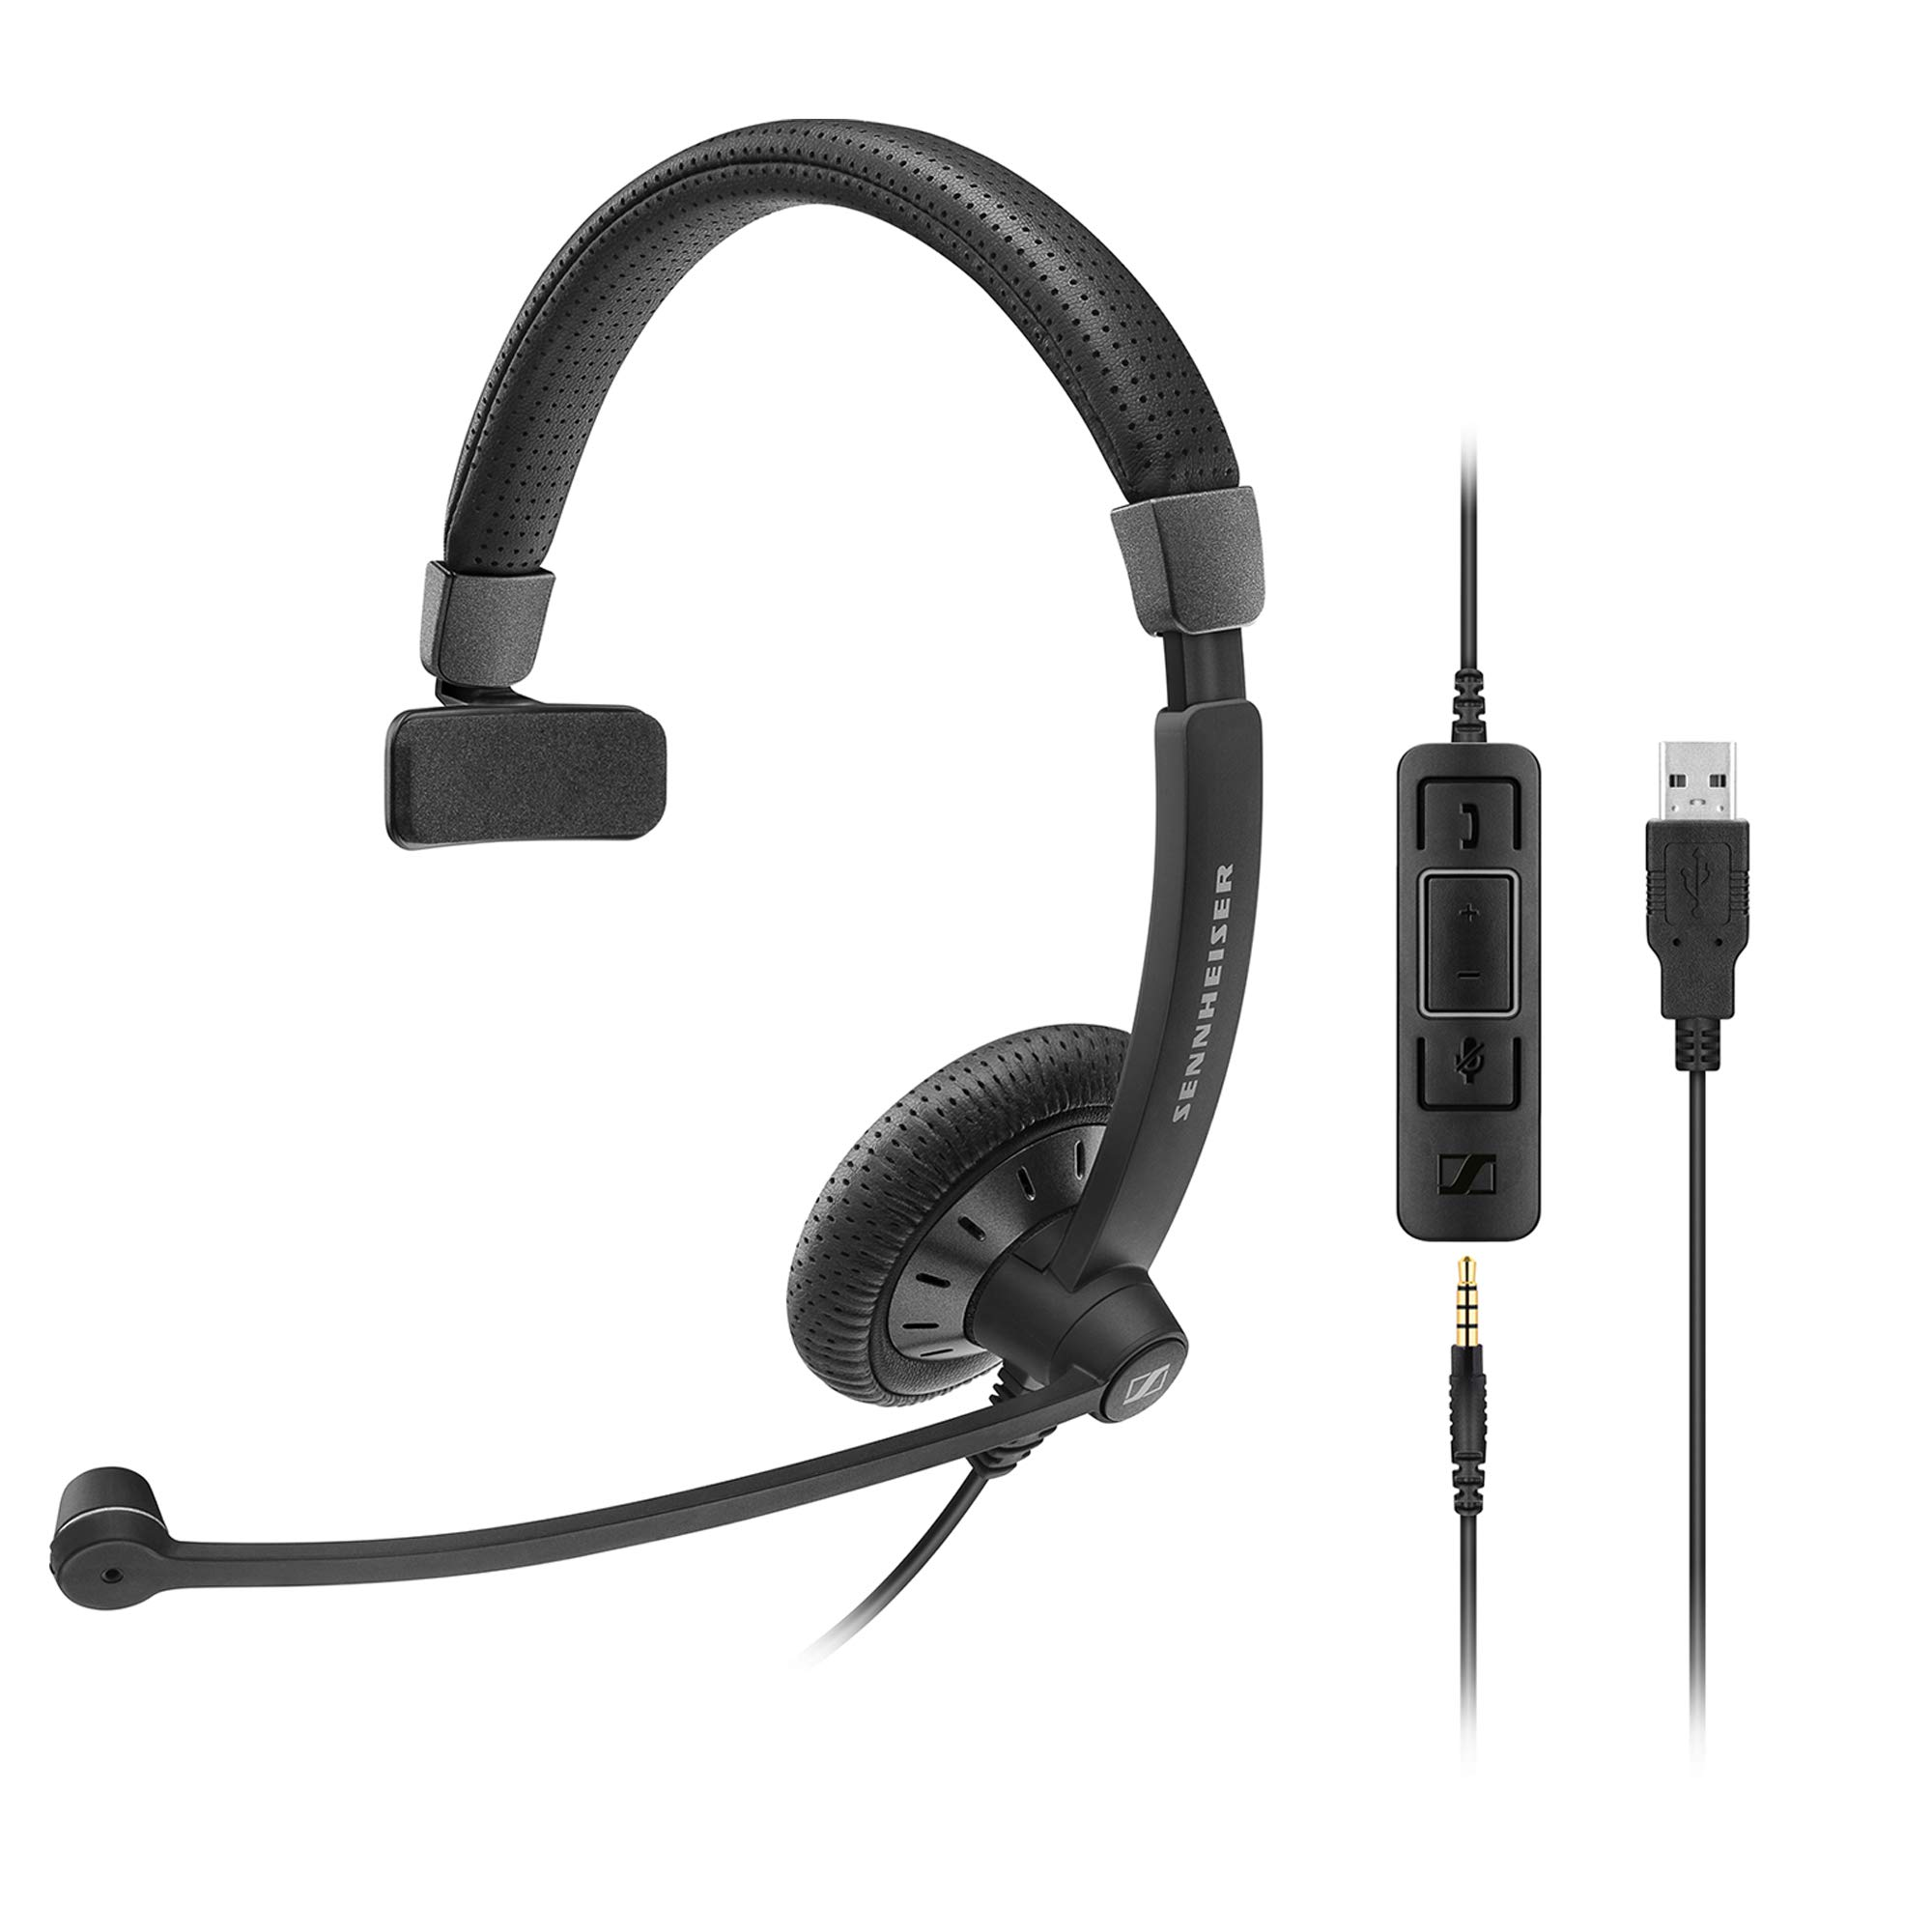 Sennheiser SC 45 USB MS (507083) - Single-Sided Business Headset | For Skype for Business, Mobile Phone, Tablet, Softphone, and PC | HD Sound & Noise-Cancelling Microphone (Black) by Sennheiser Enterprise Solution